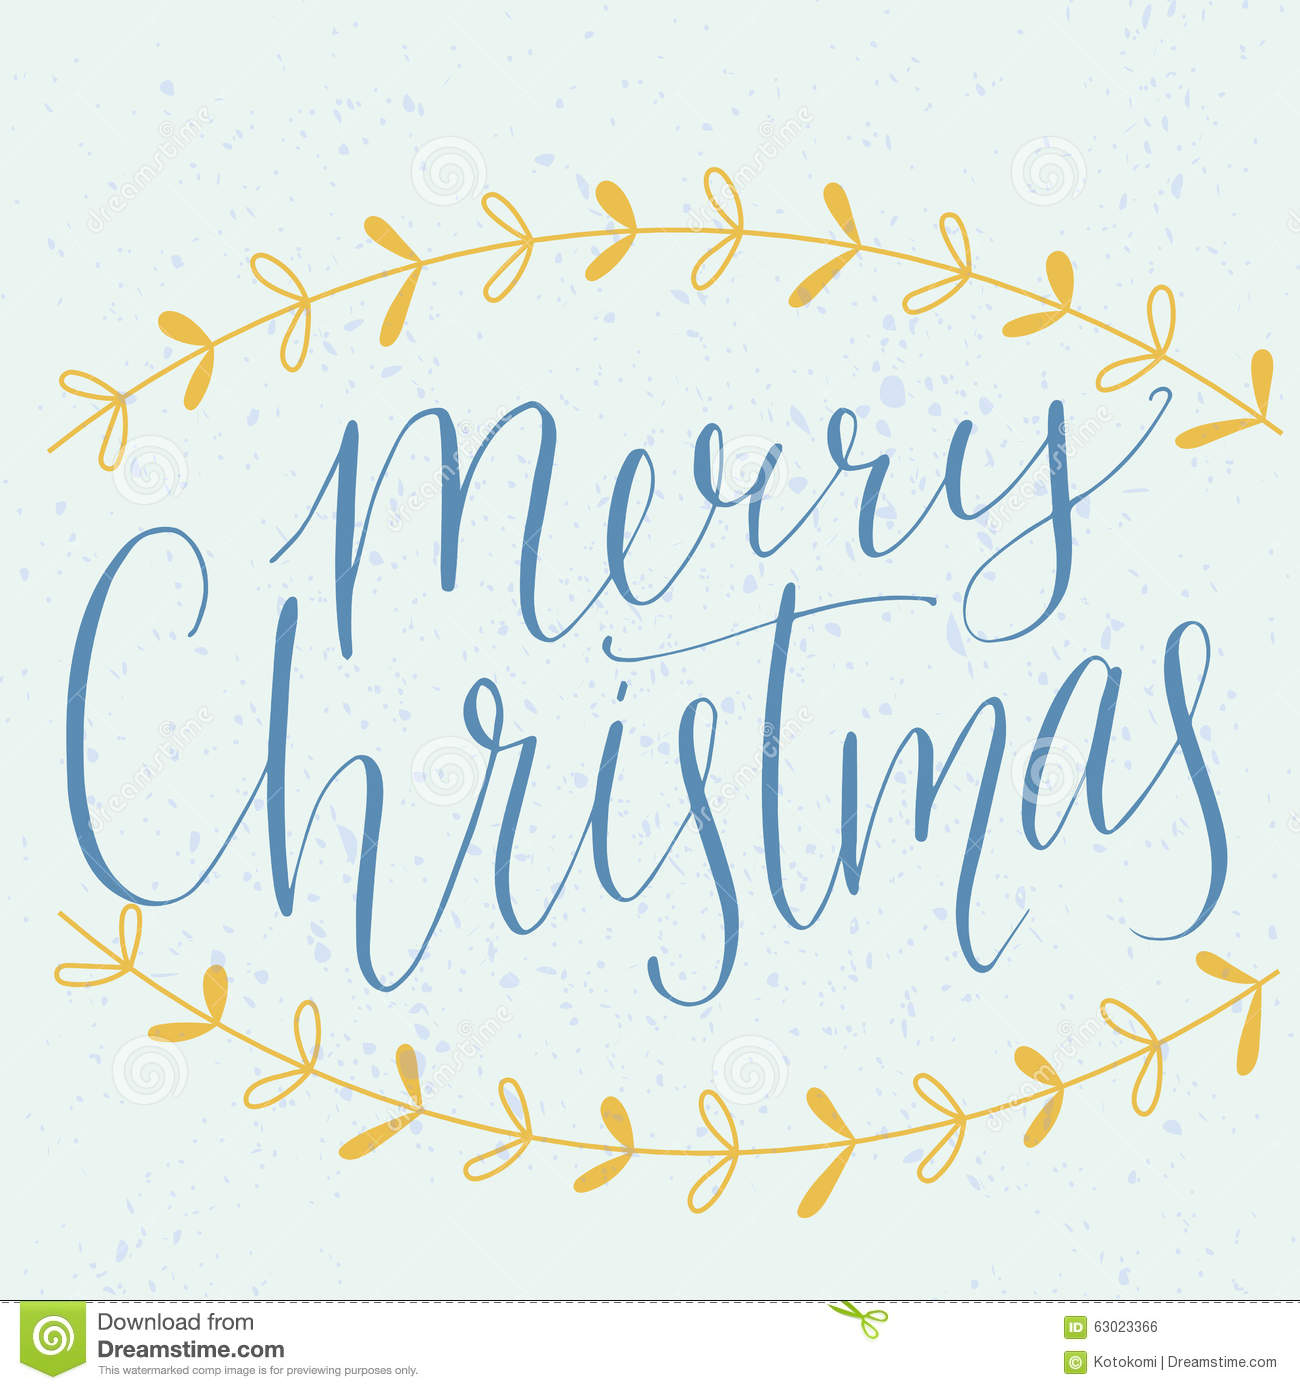 merry christmas type modern calligraphy made with